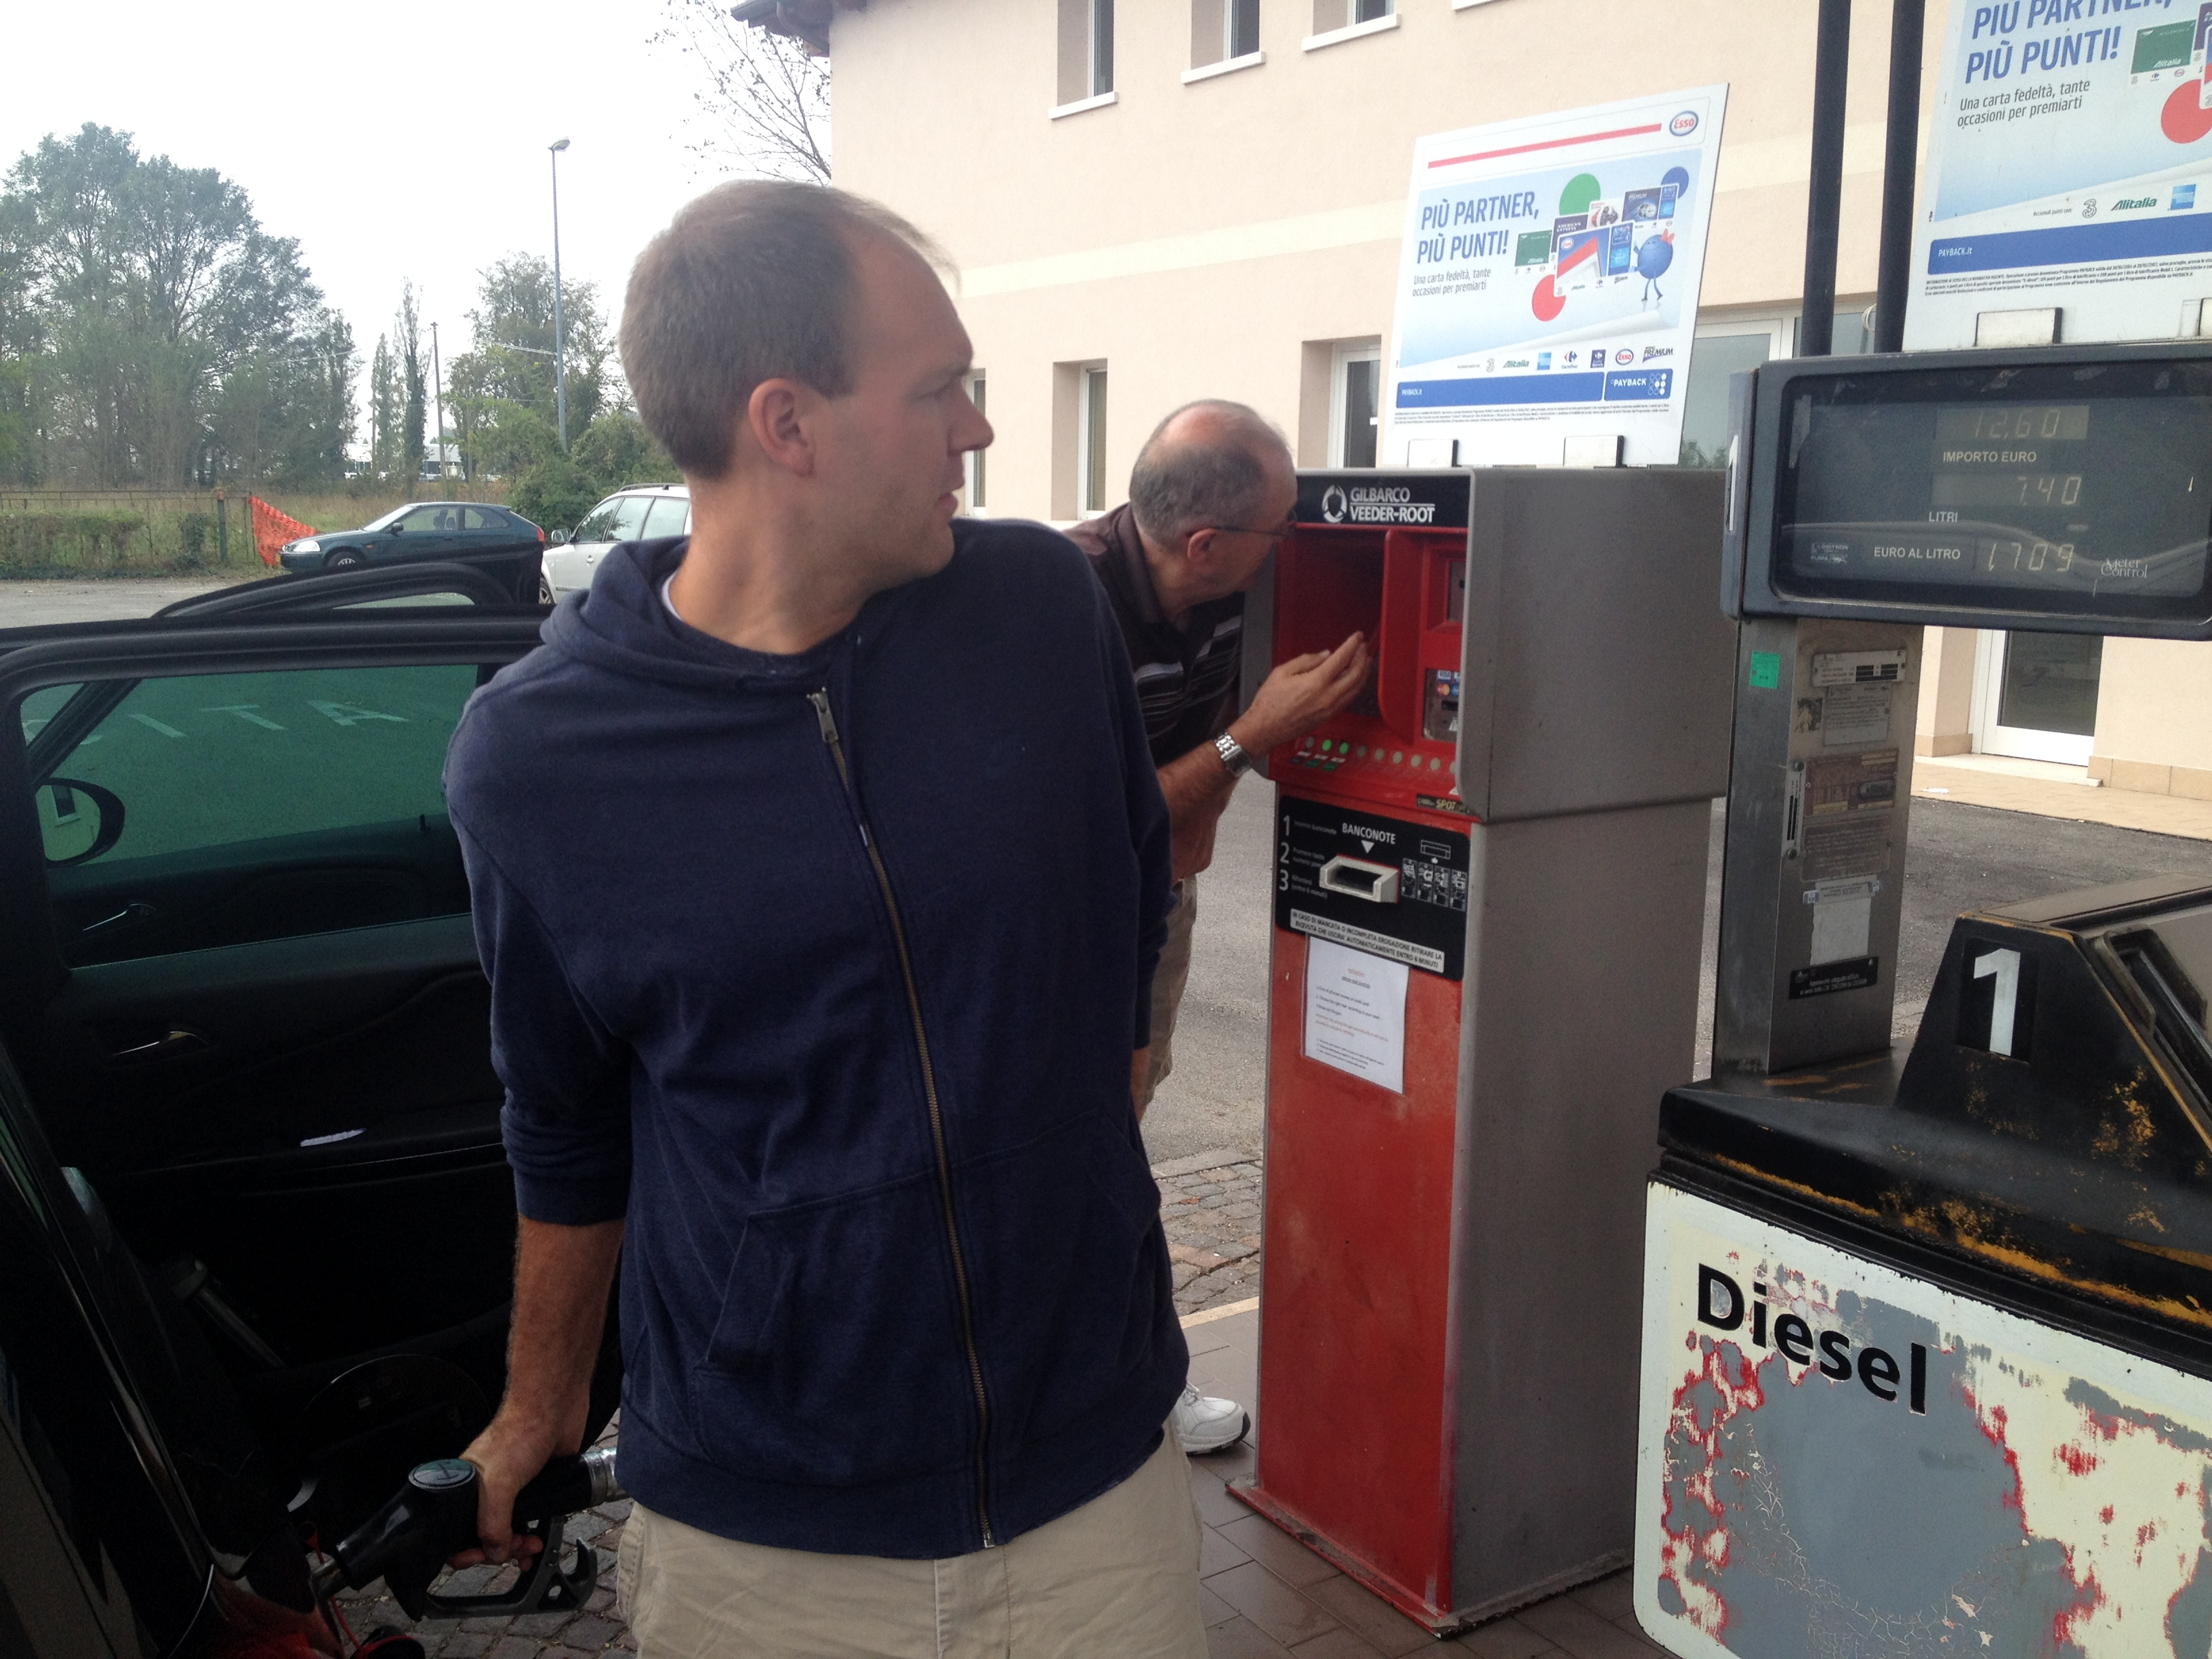 Trying to figure out how to work the European gas pump. Like many European vehicles, it was a stick shift and used diesel fuel.